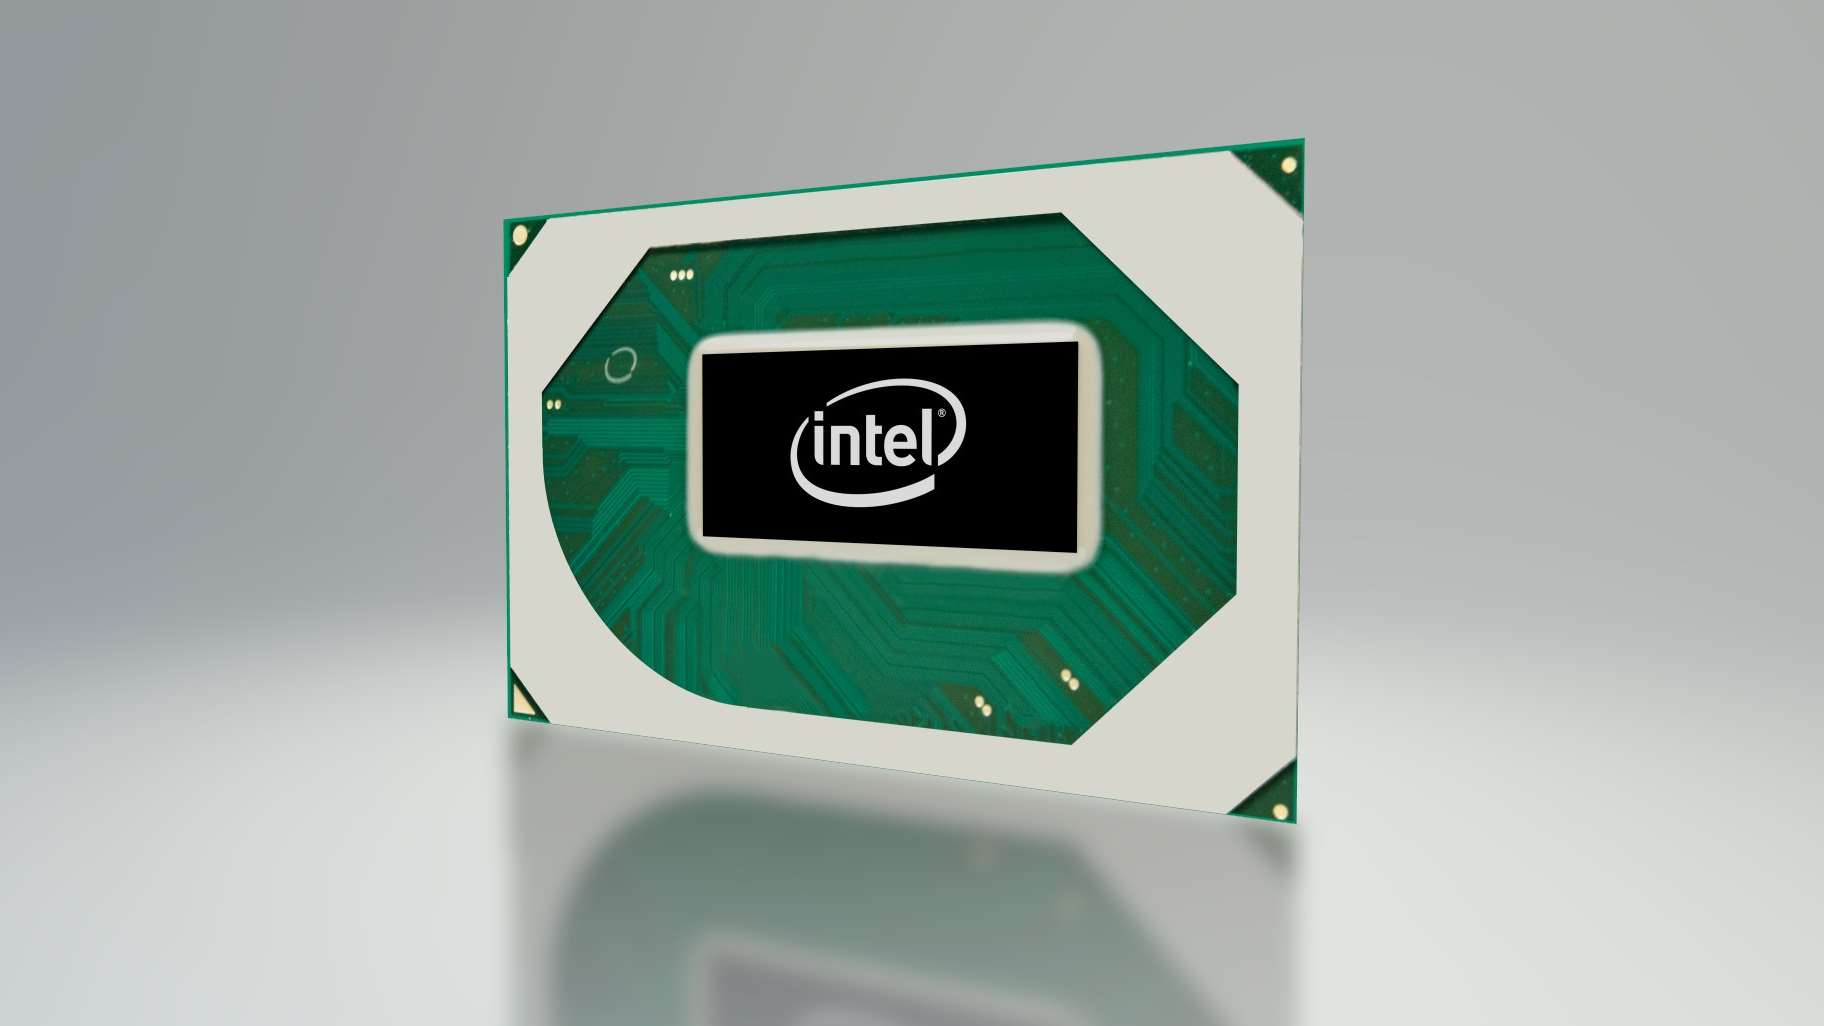 Best Intel Cpu For Gaming 2020 Intel confirms Tiger Lake, the Xe GPU powered processor, is